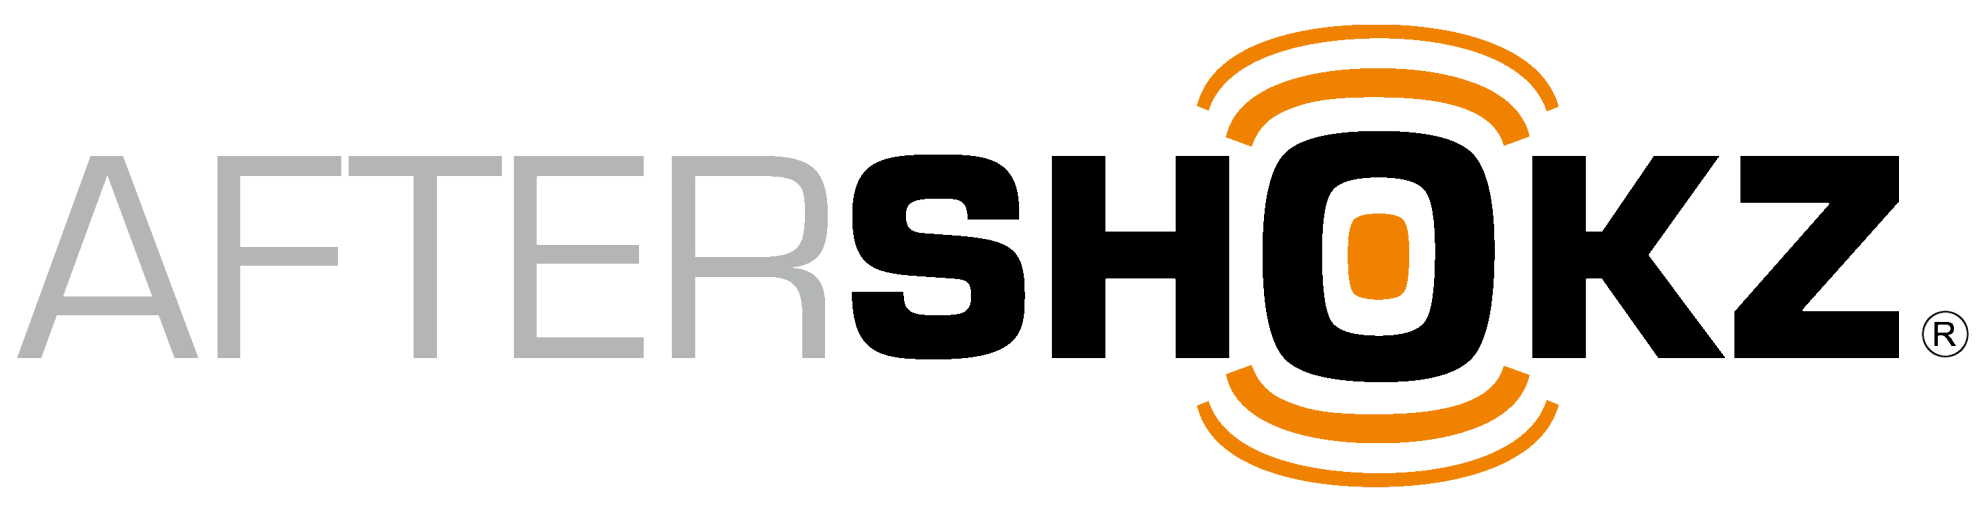 Aftershokz logo